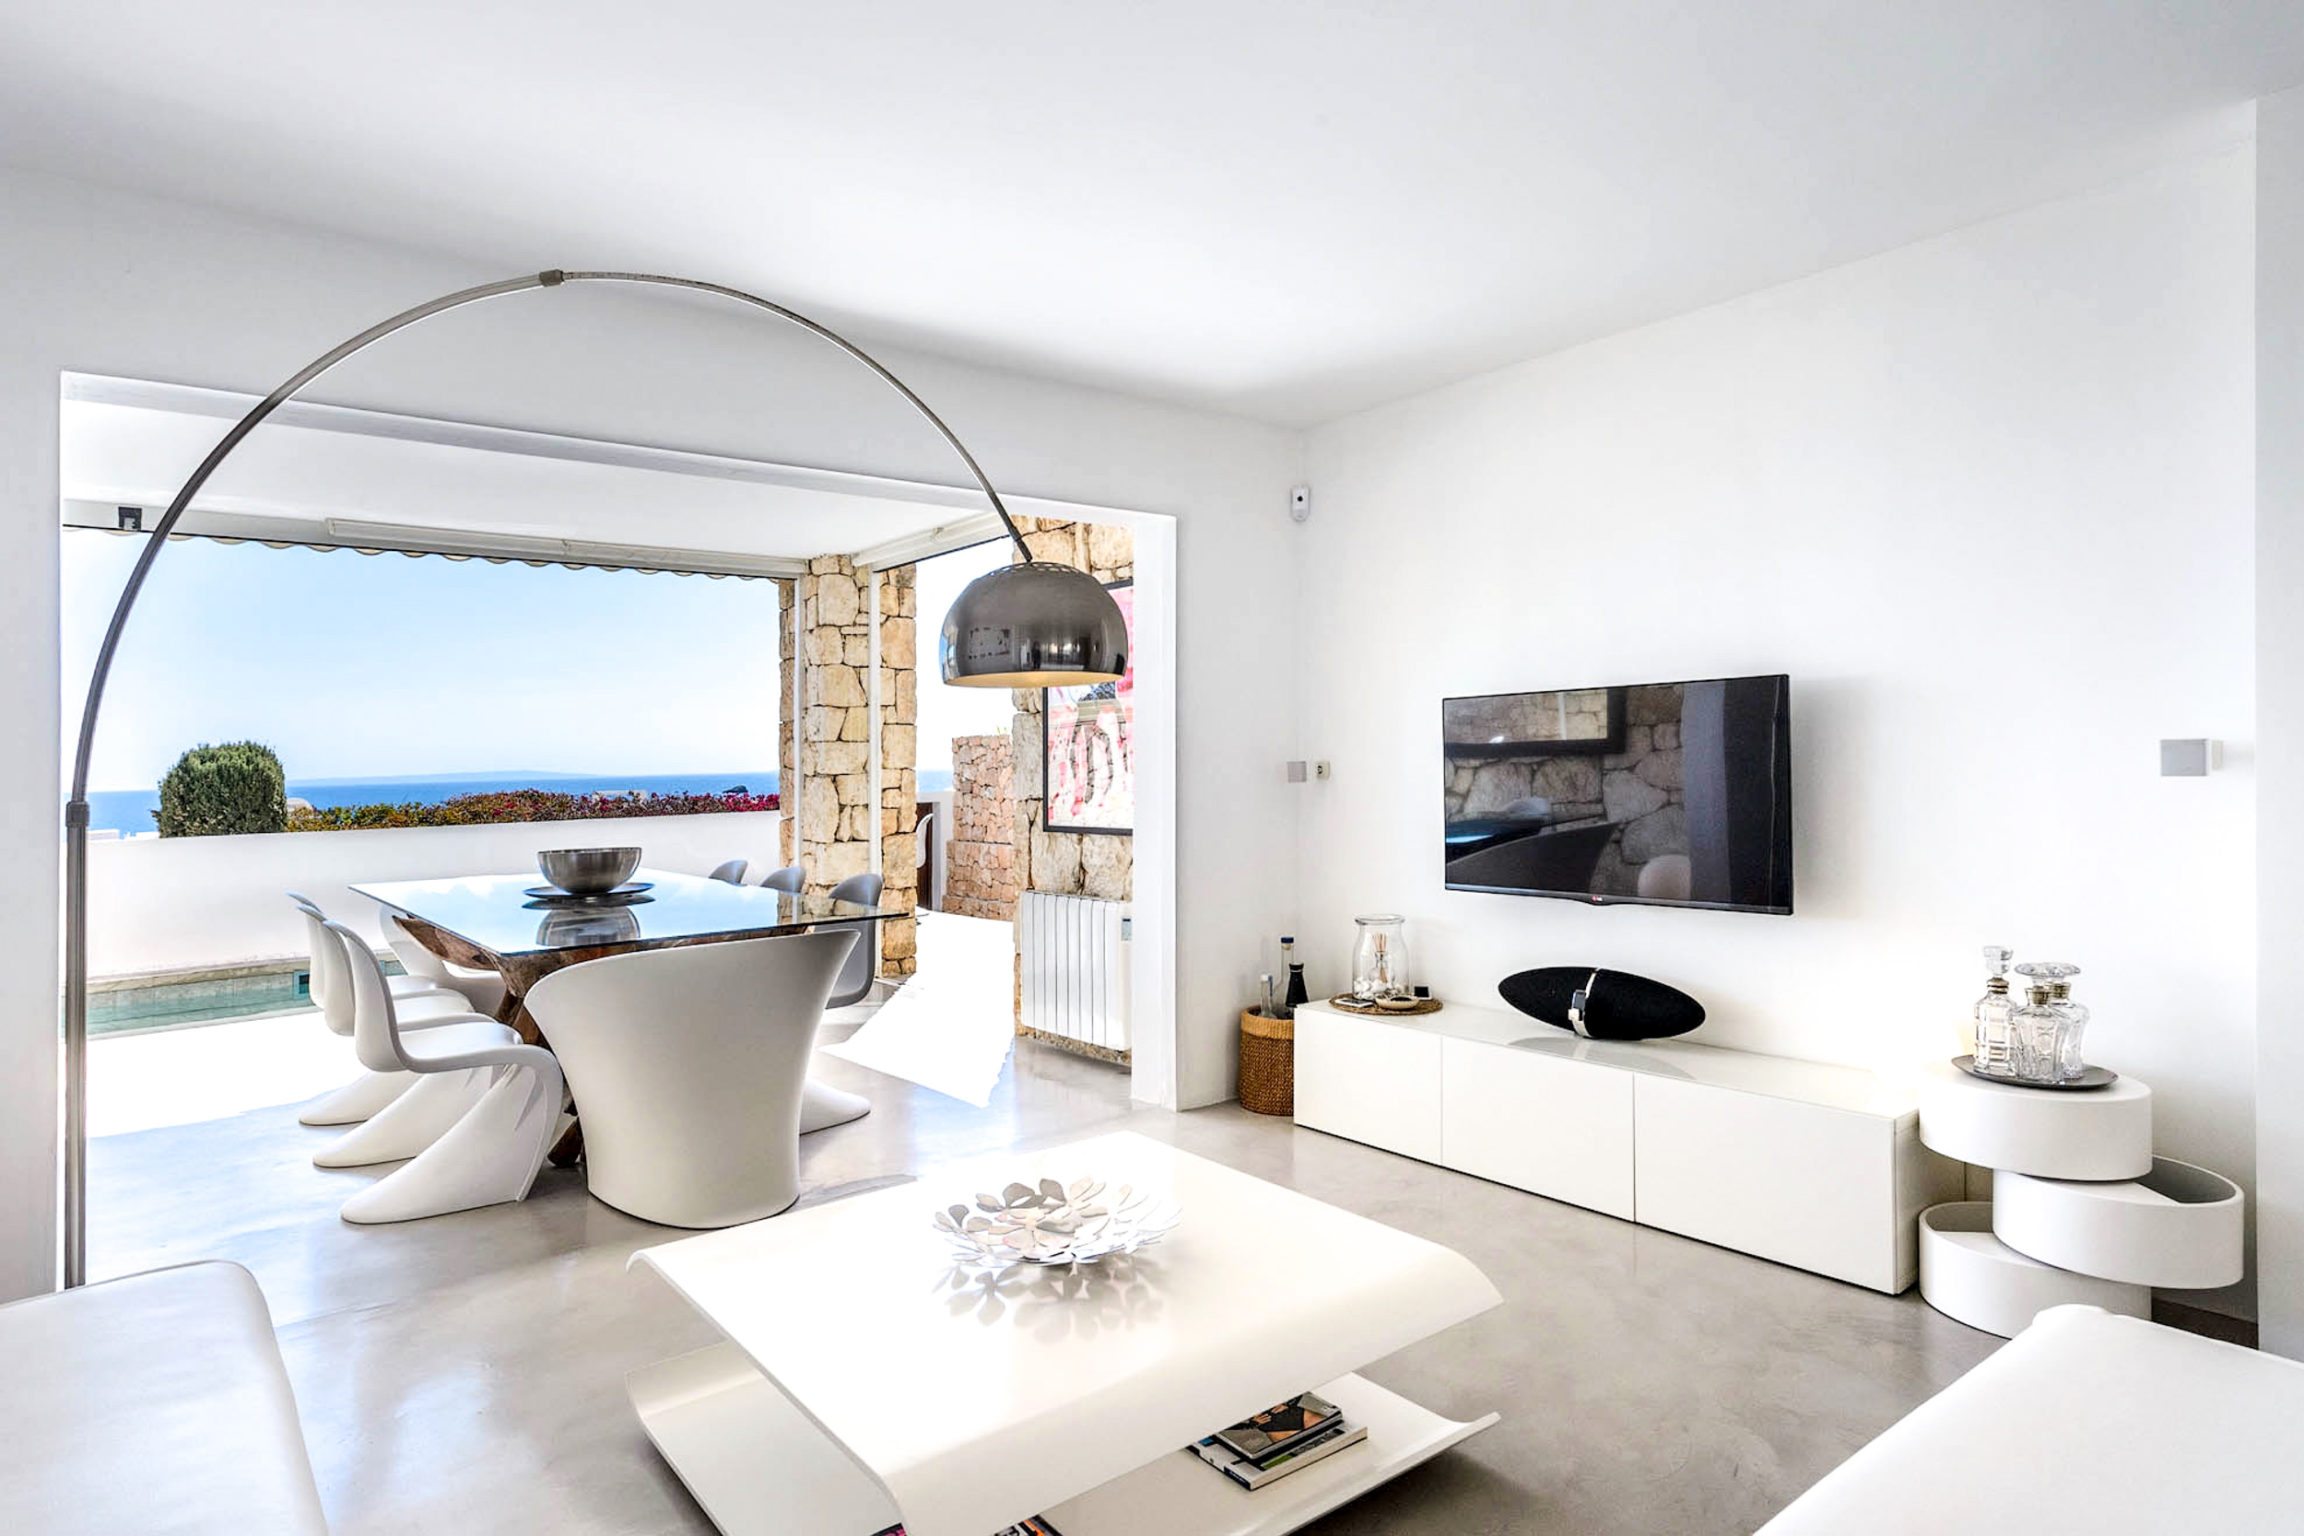 https://www.white-ibiza.com/wp-content/uploads/2020/03/white-ibiza-property-WI181-2020-09-2304x1536.jpg